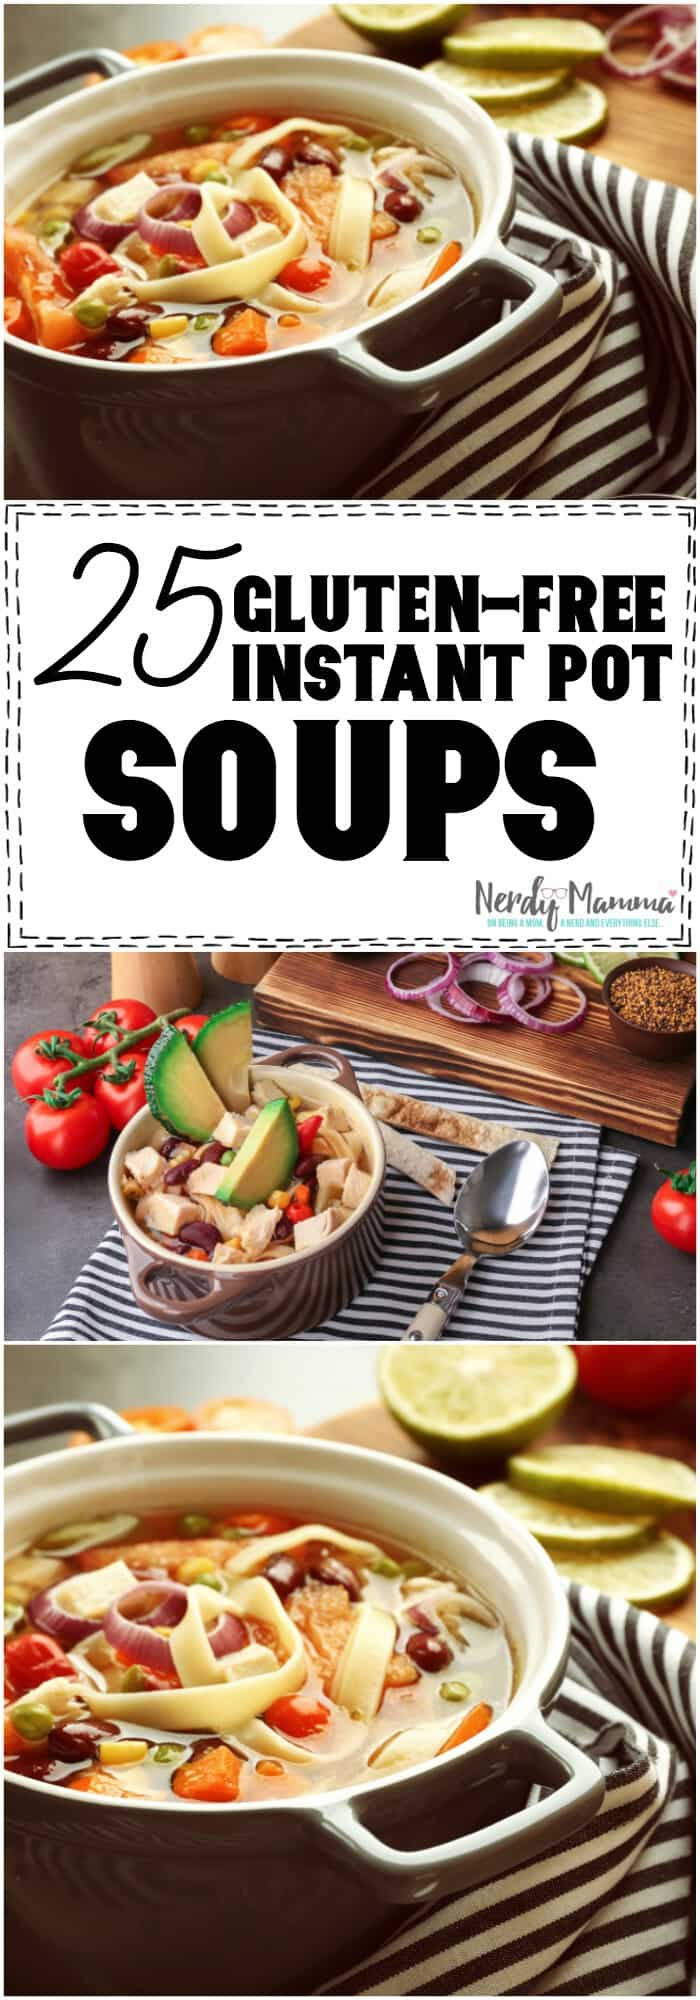 25 Delicious Gluten-free Instant Pot Soups for those rainy spring days. #soup #instantpot #recipe #instantpotrecipe #instantpotsoup #glutenfree #glutenfreerecipe #glutenfreeinstantpot